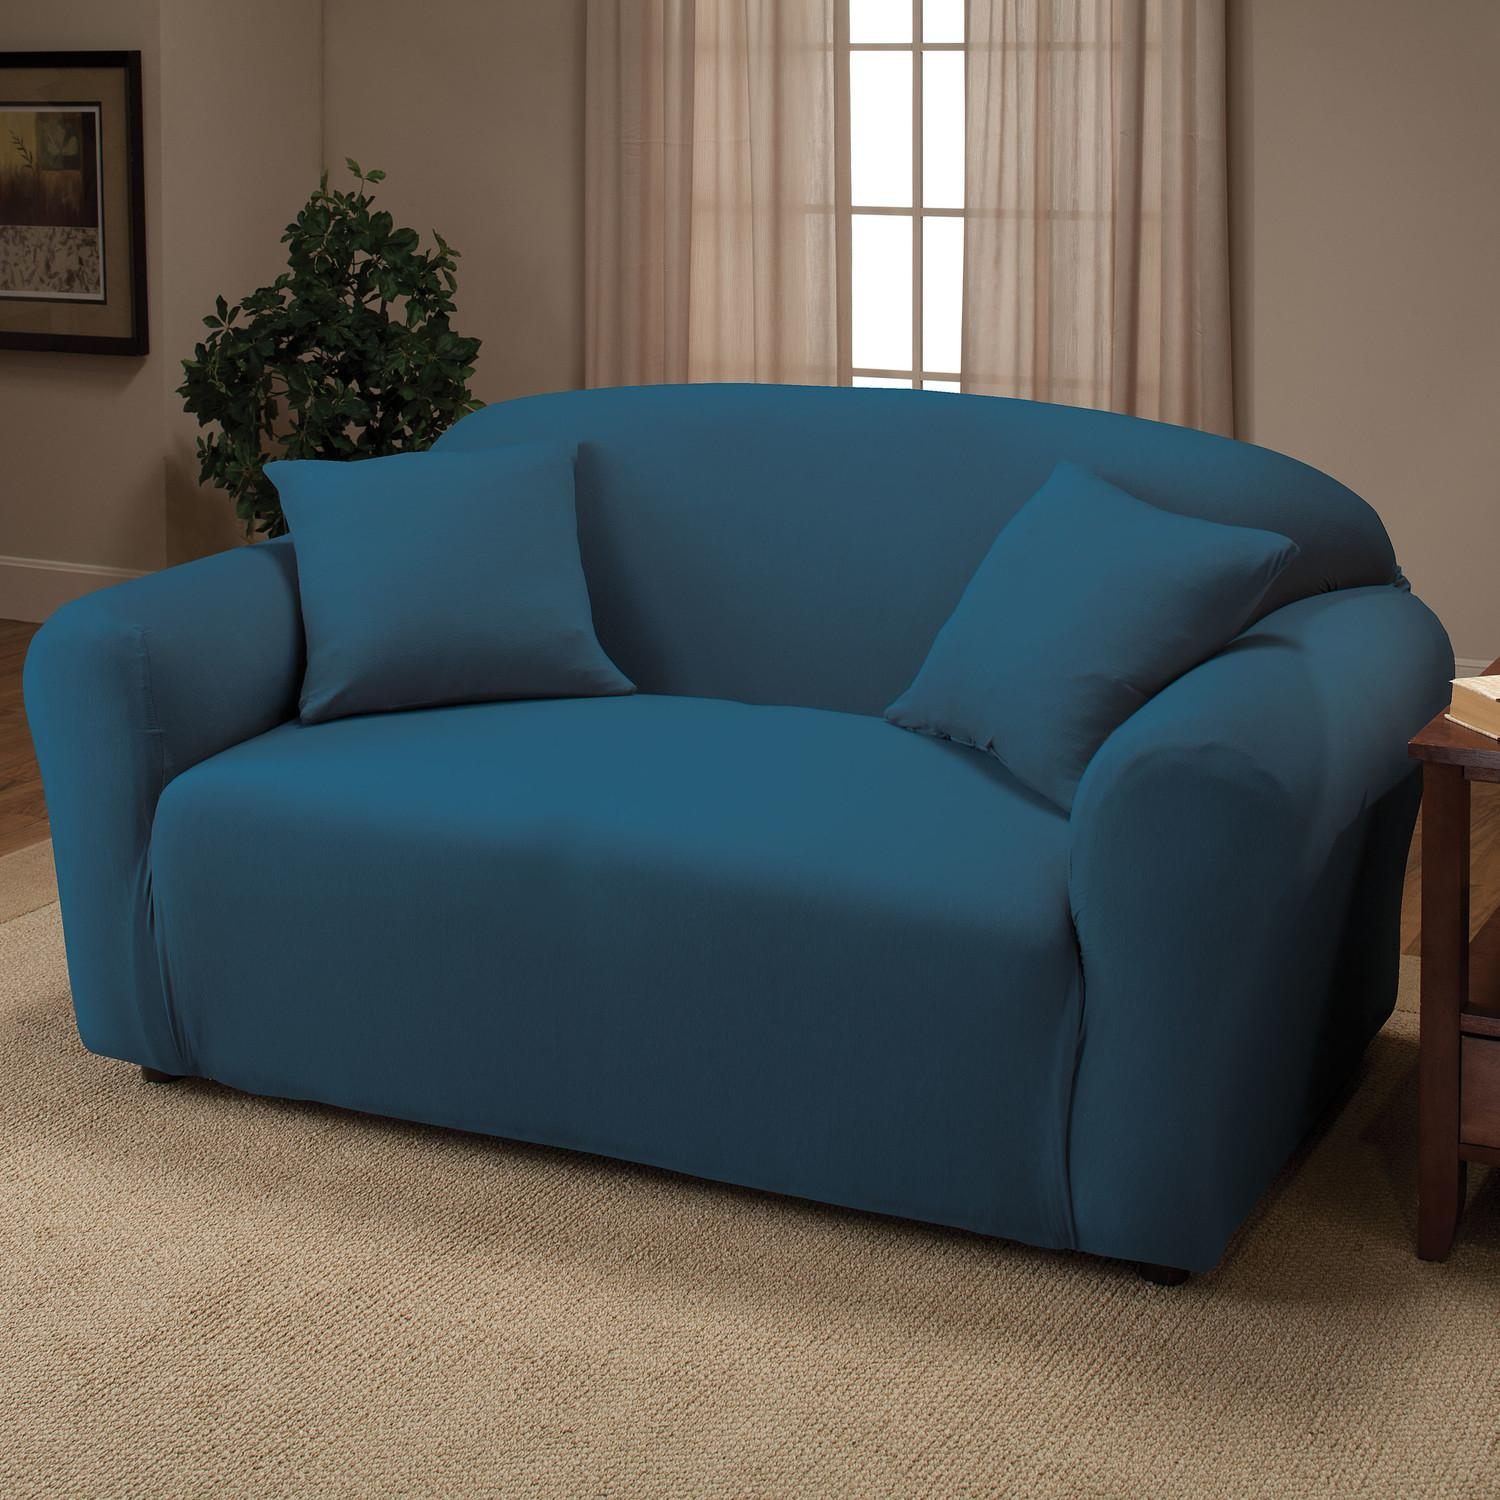 Decorating: Luxury Blue Slipcovers For Sofas With Cushions In Blue Slipcovers (Image 6 of 20)